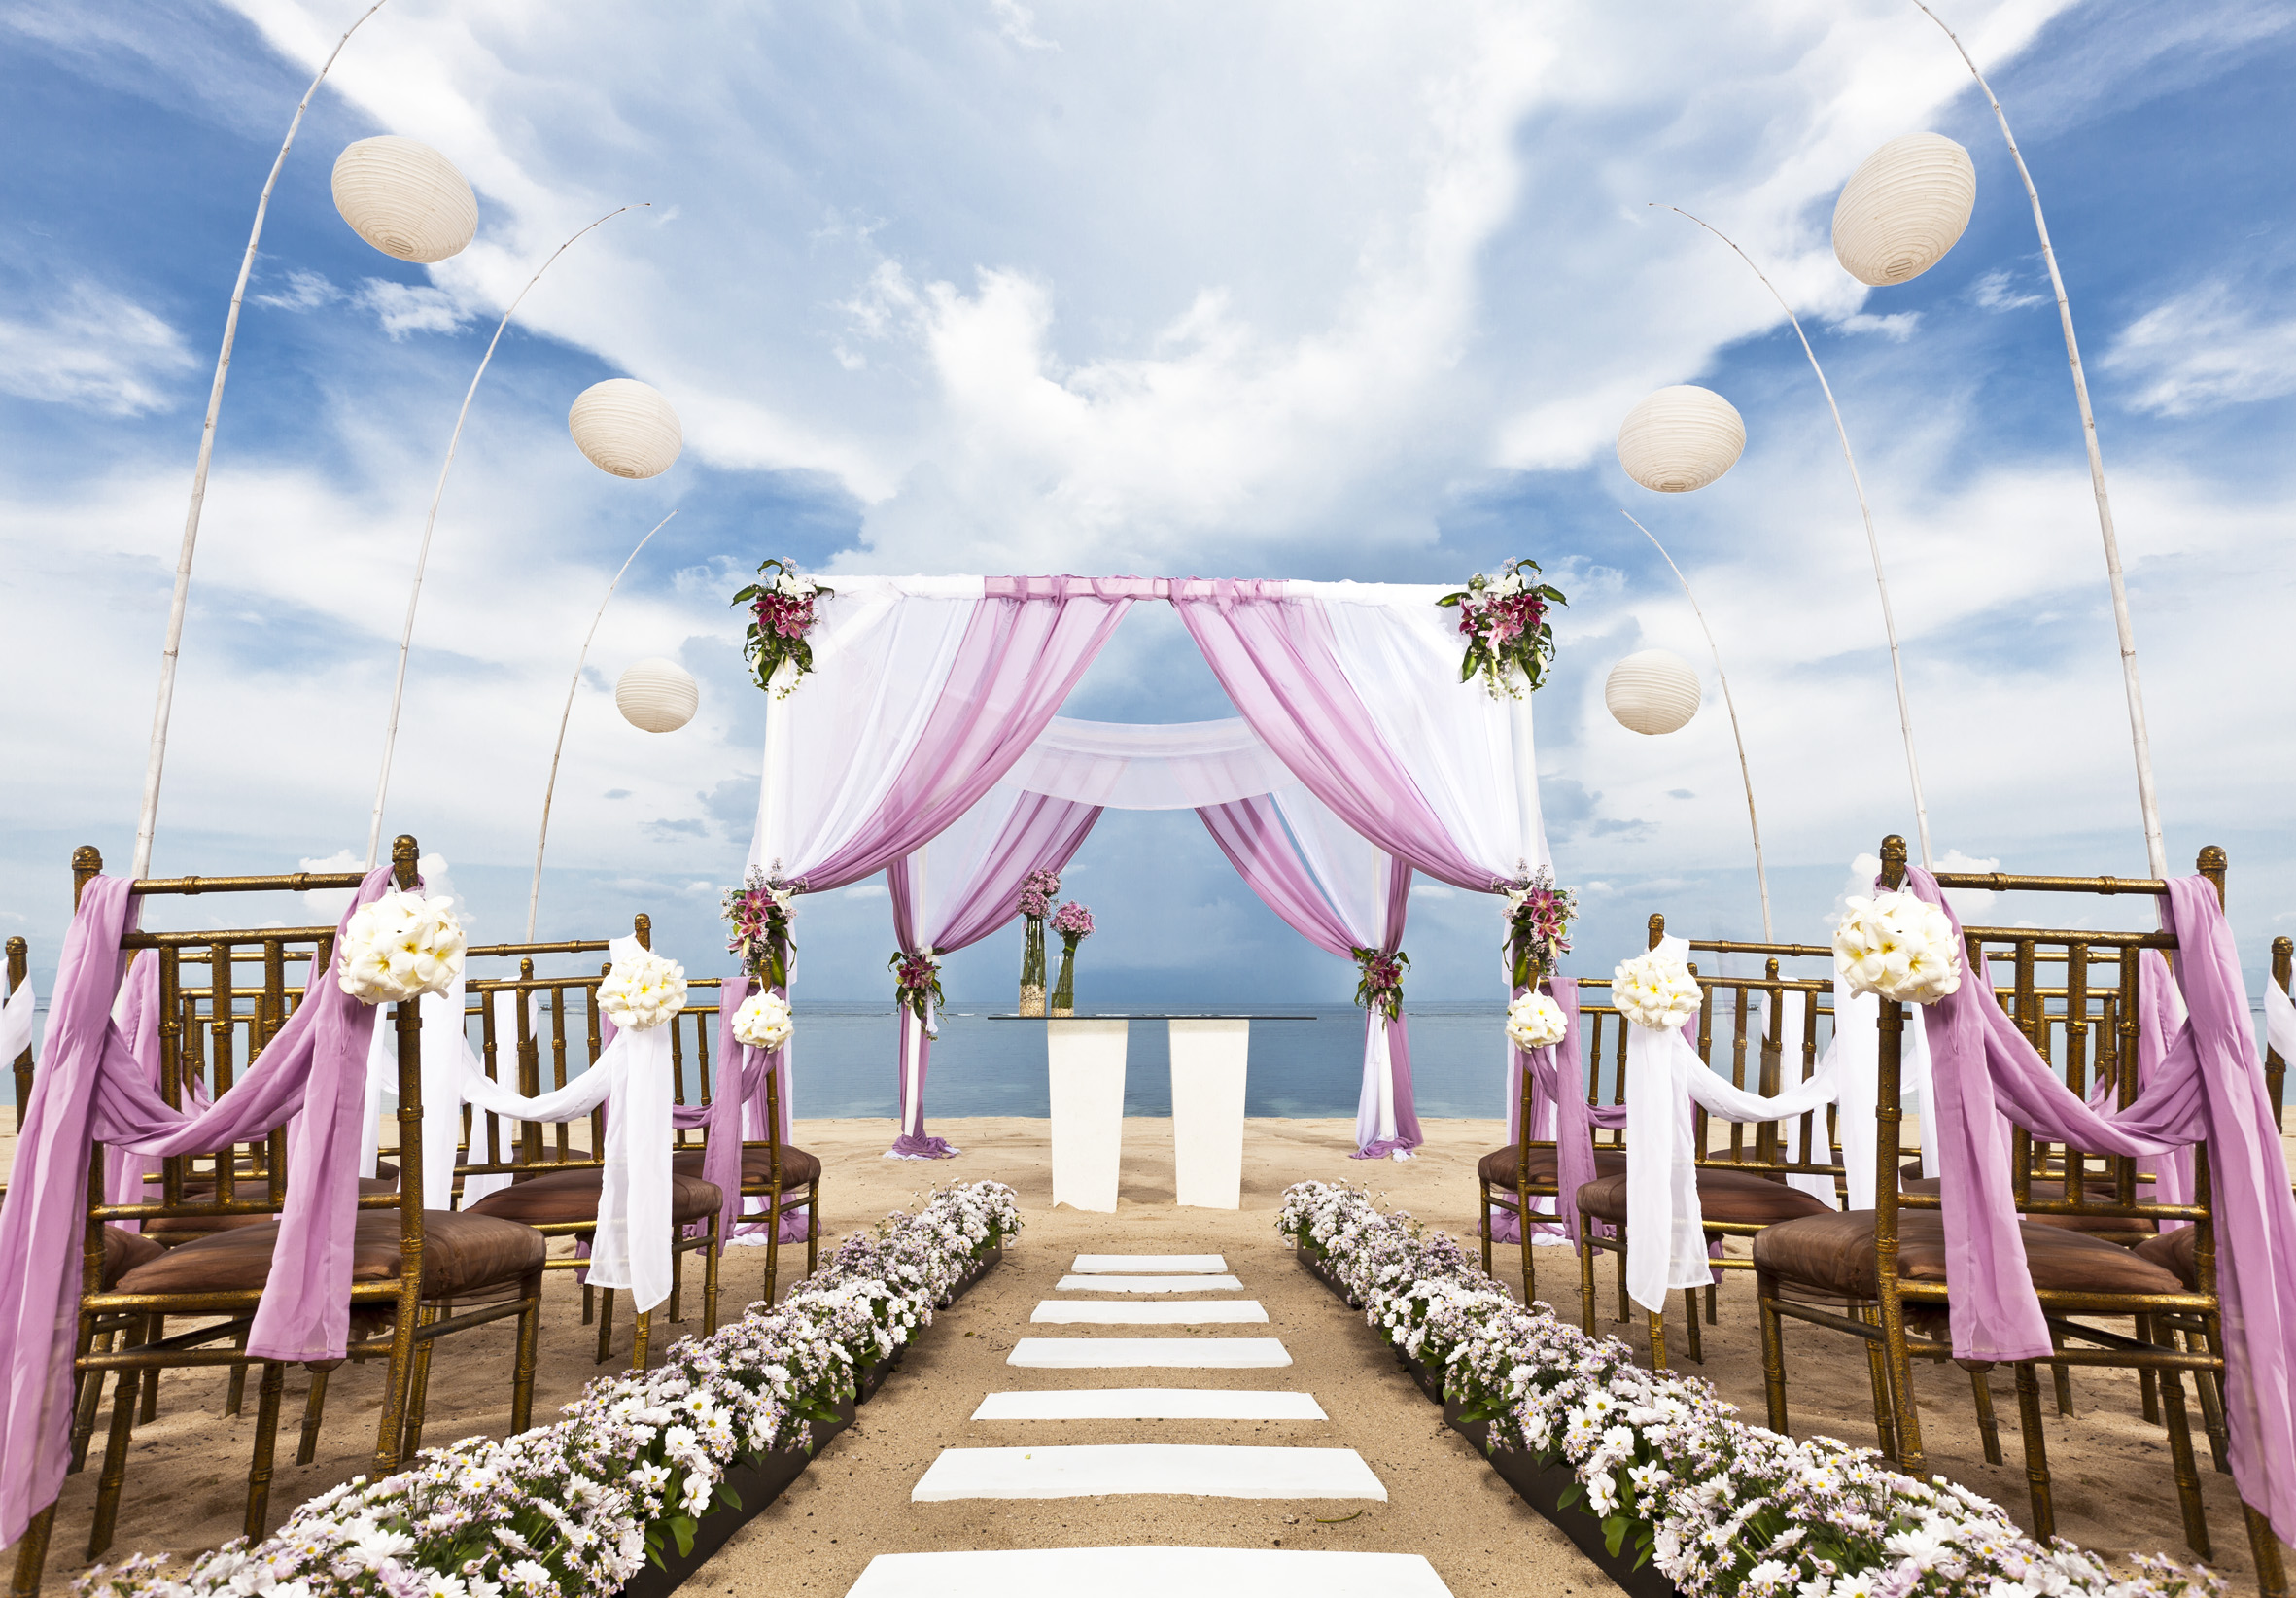 Persian wedding and party services blog articles find party time for wedding ideas junglespirit Gallery